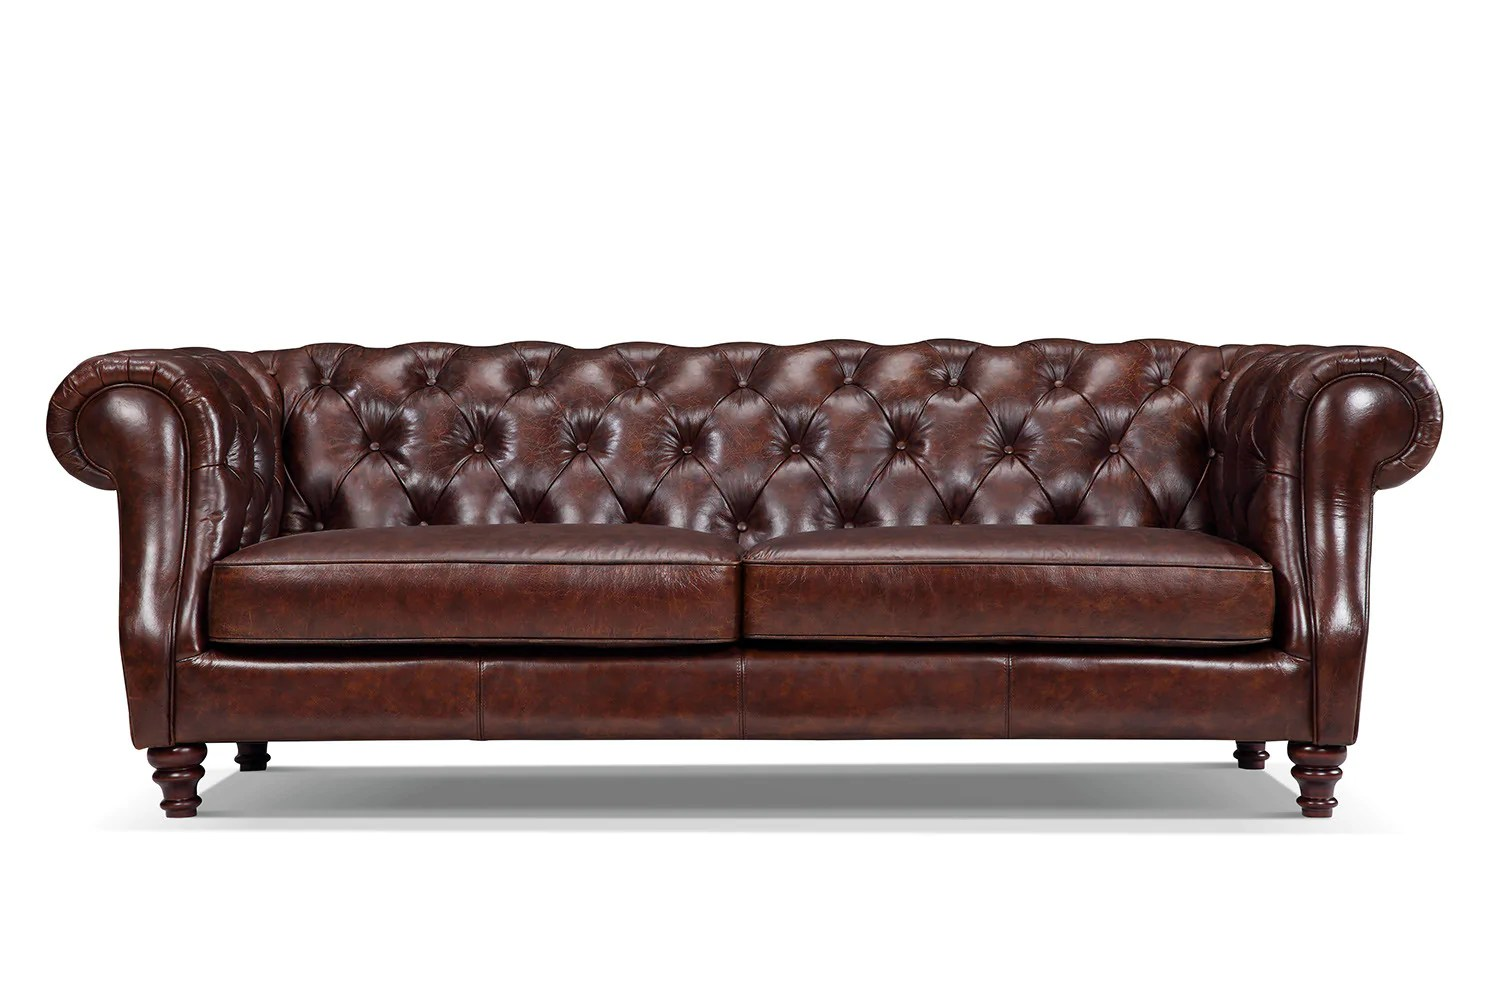 Quotes On Sofa The Chelsea Chesterfield Sofa Rose And Moore